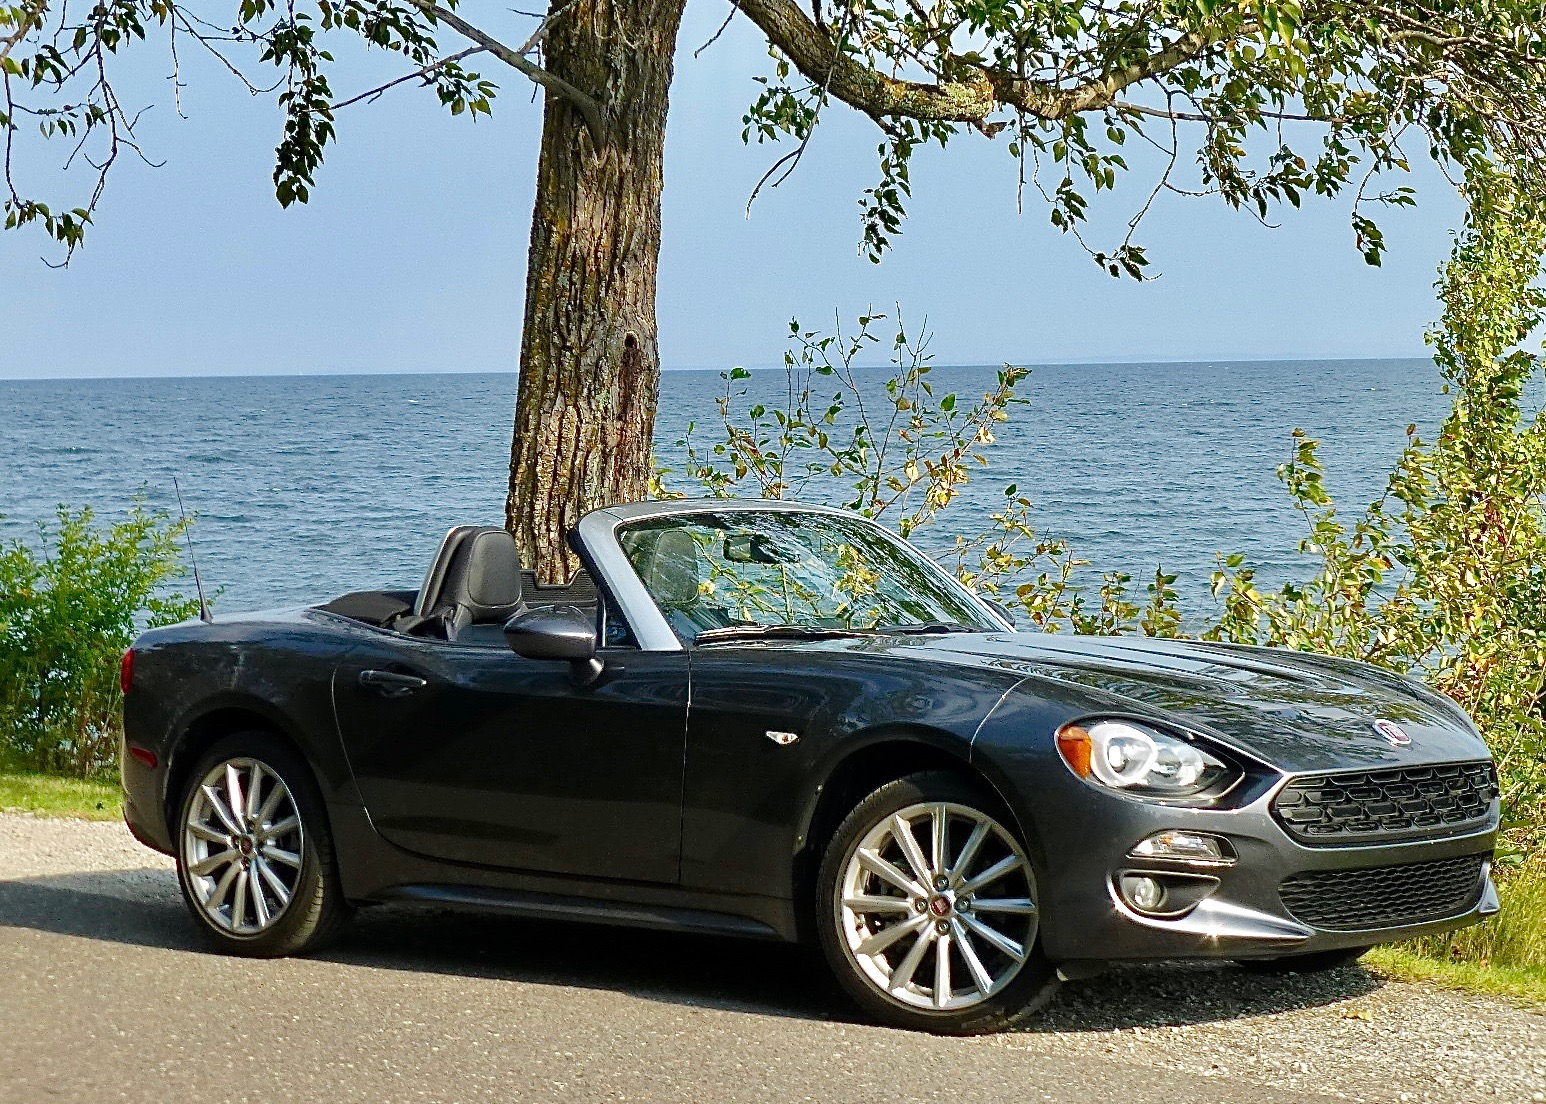 Combining Mazda technology with Italian style makes the Fiat 124 Spider extra appealing.